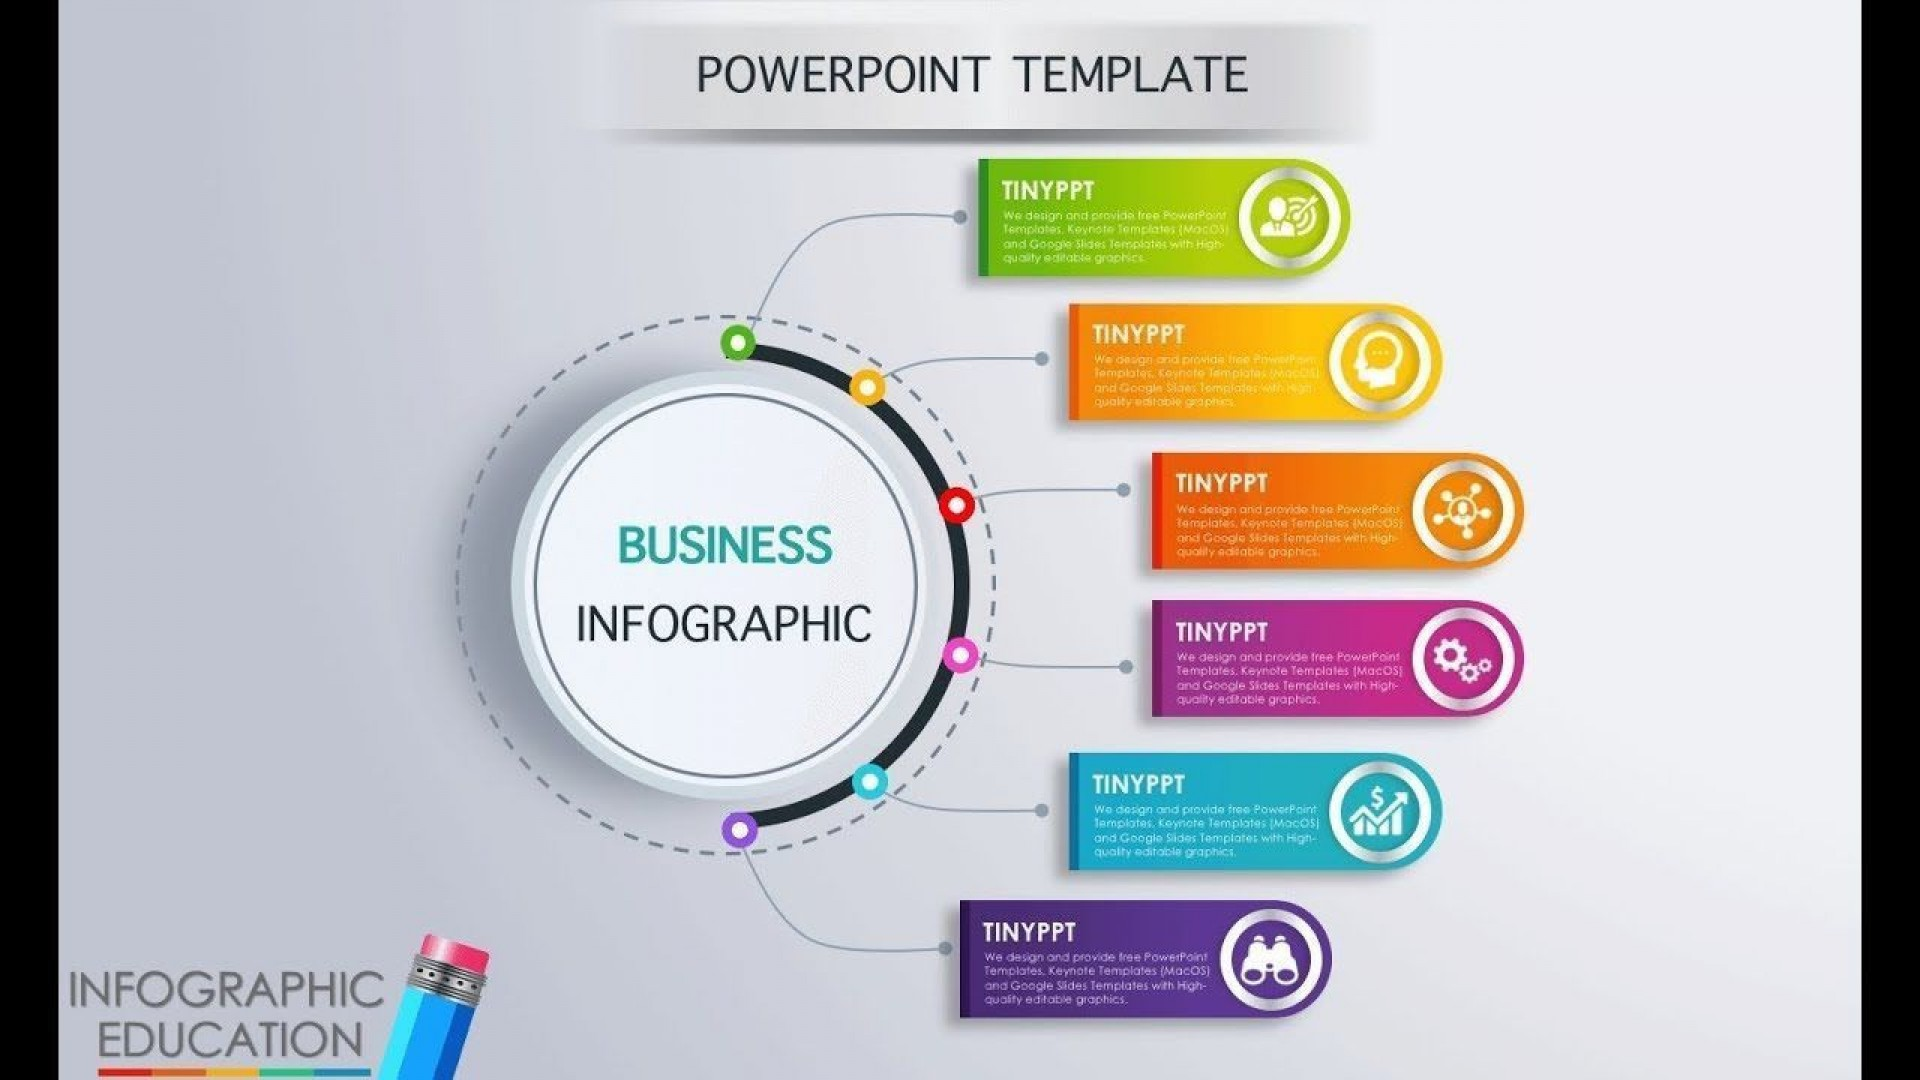 006 Fascinating Free Download Ppt Template For Technical Presentation High Resolution  Simple Project Sample1920